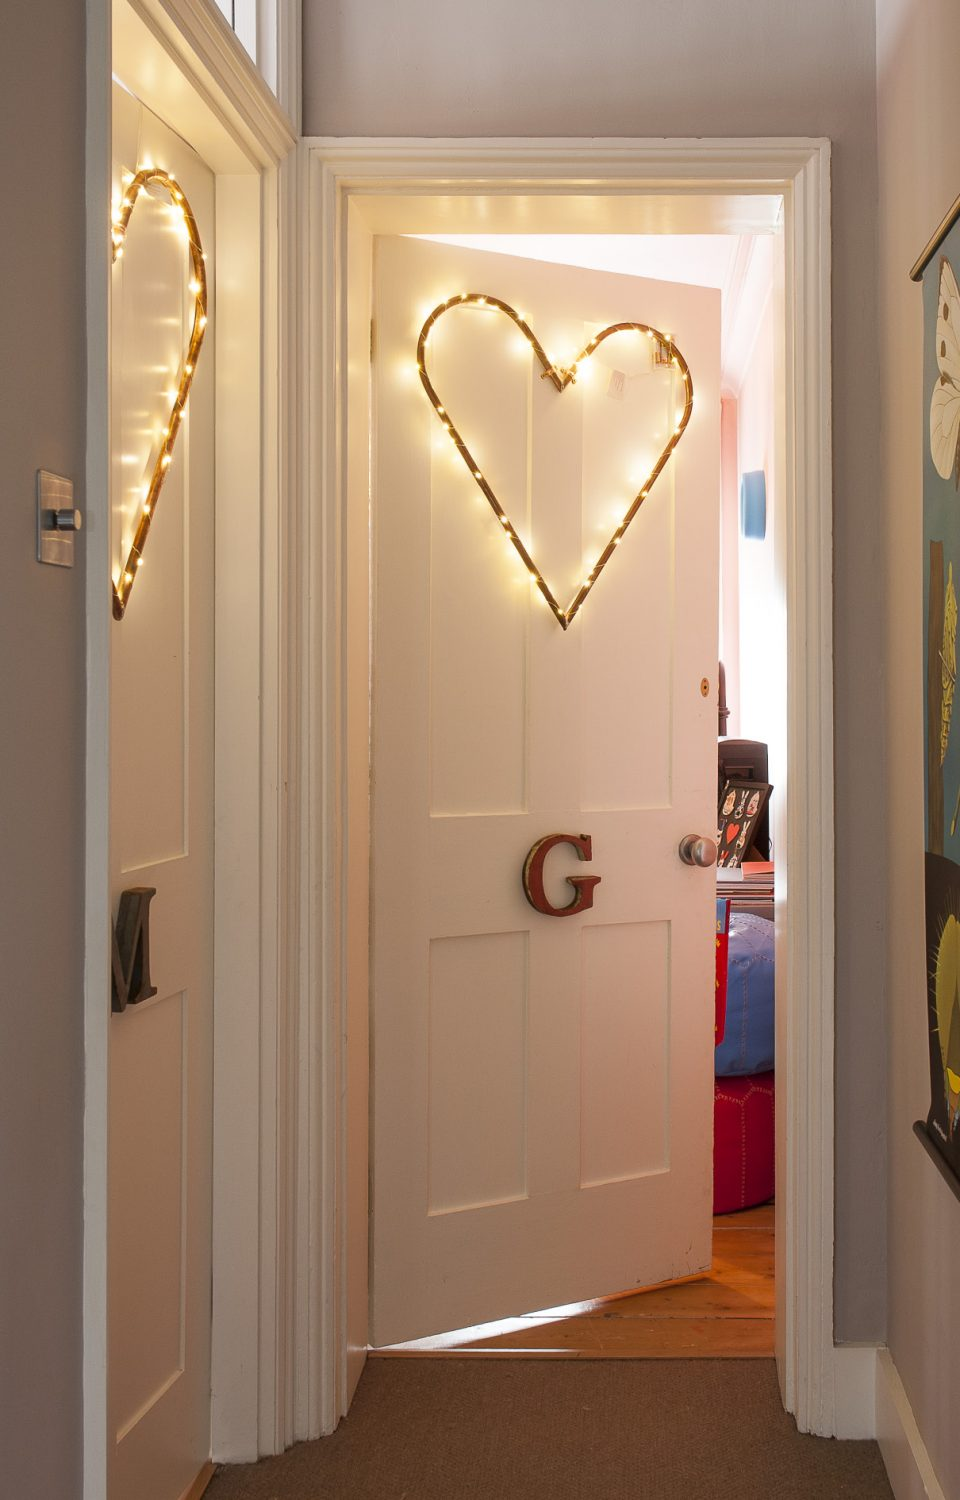 The landing leading to the girls' bedrooms is where Justine says you enter the fun part of the house